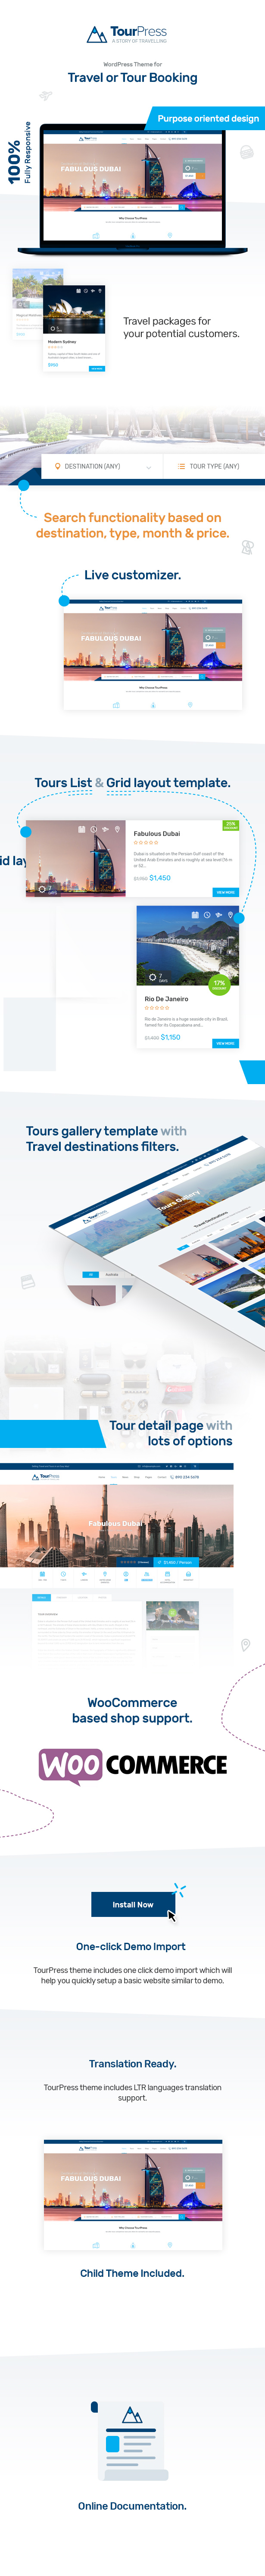 TourPress - WordPress Theme for Travel or Tour Booking